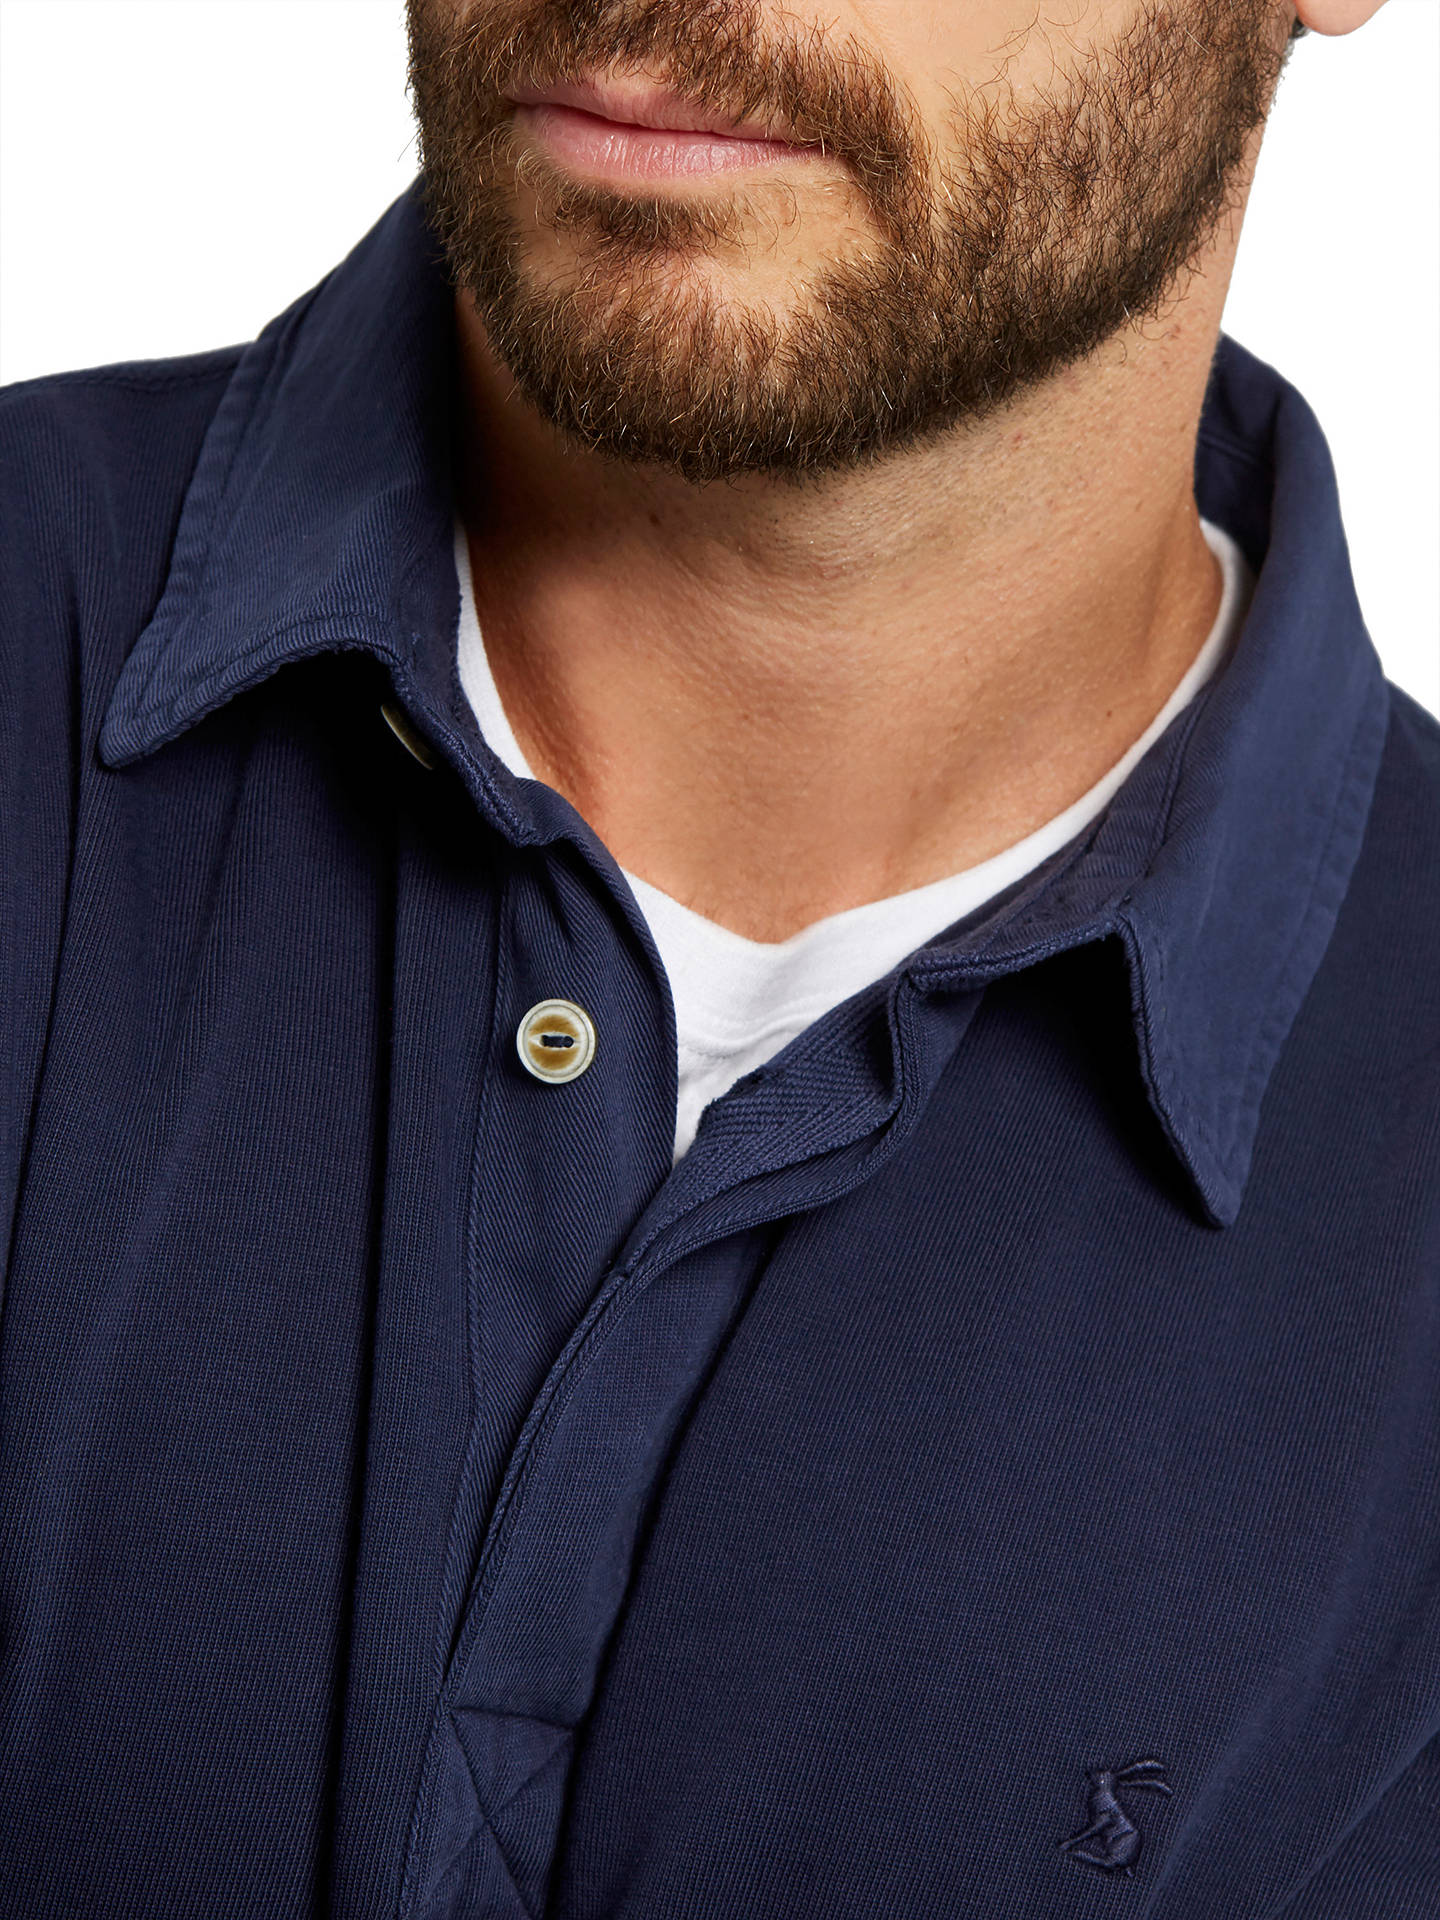 423020c1449 ... Buy Joules Parkside Rugby Jersey Top, French Navy, S Online at  johnlewis.com ...